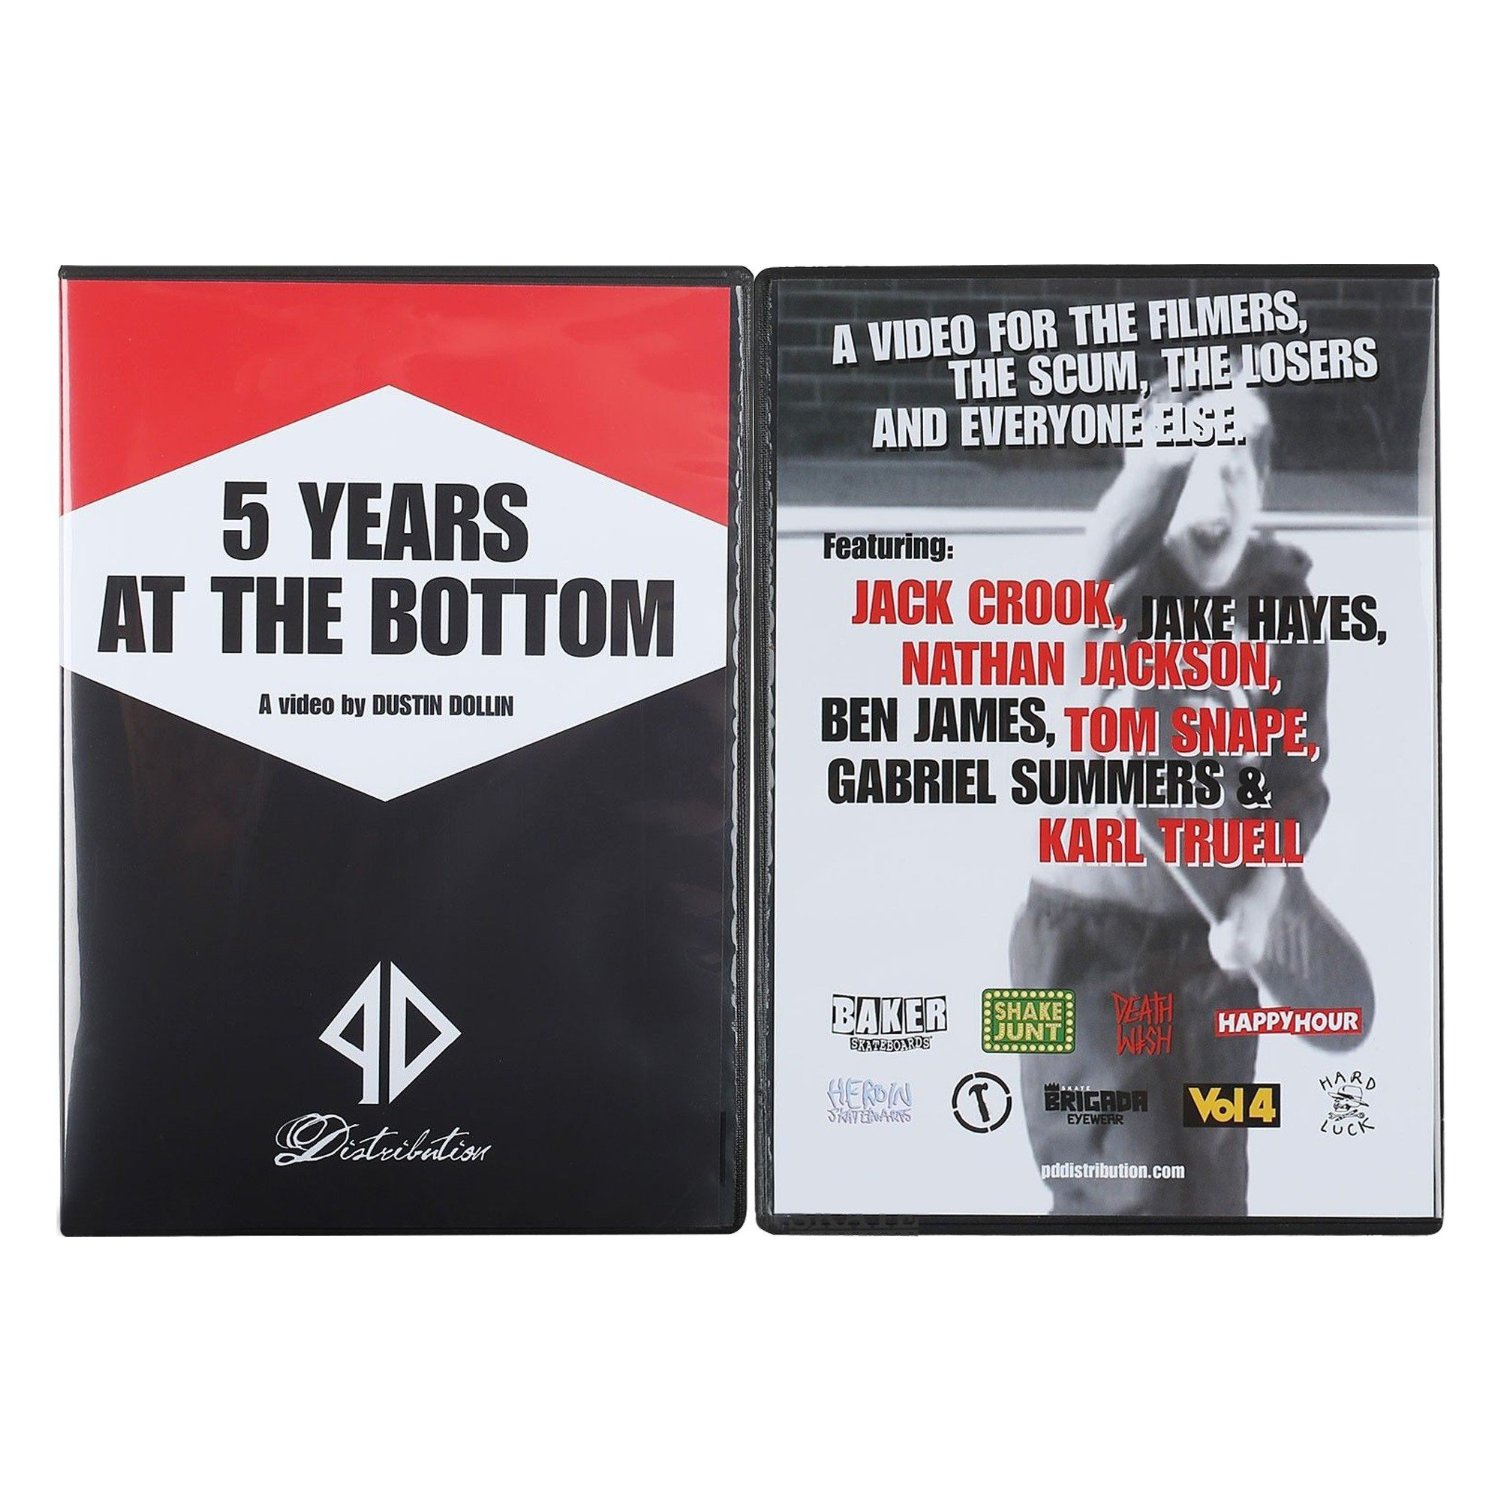 PD DIST 5 Years At The Bottom DVD by Baker skateboards Piss Drunx dustin dollin New Video FREE POST